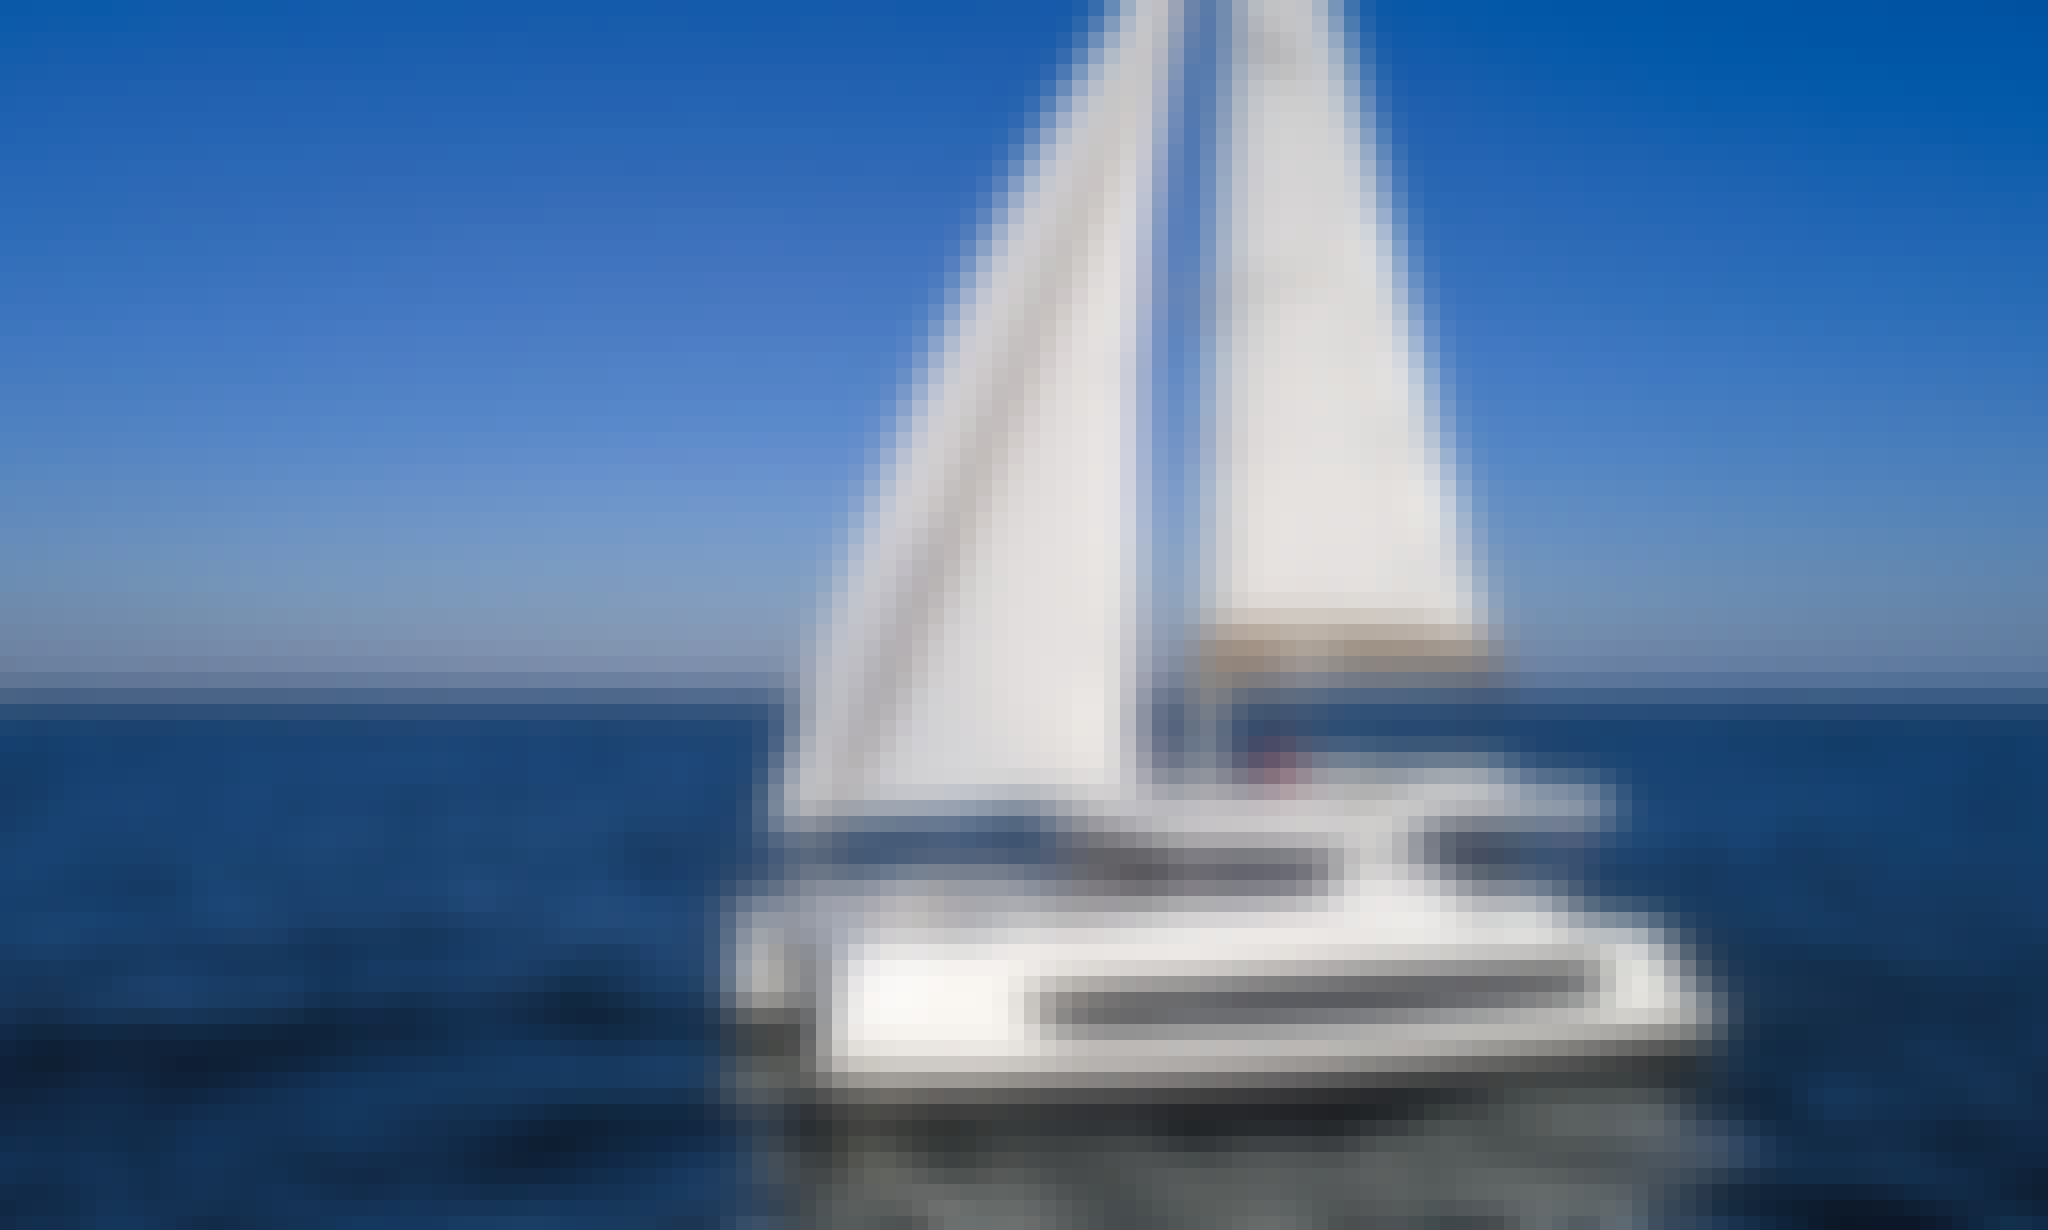 Bali Catspace Bareboat Charter for Up to 10 People in Alimos, Greece